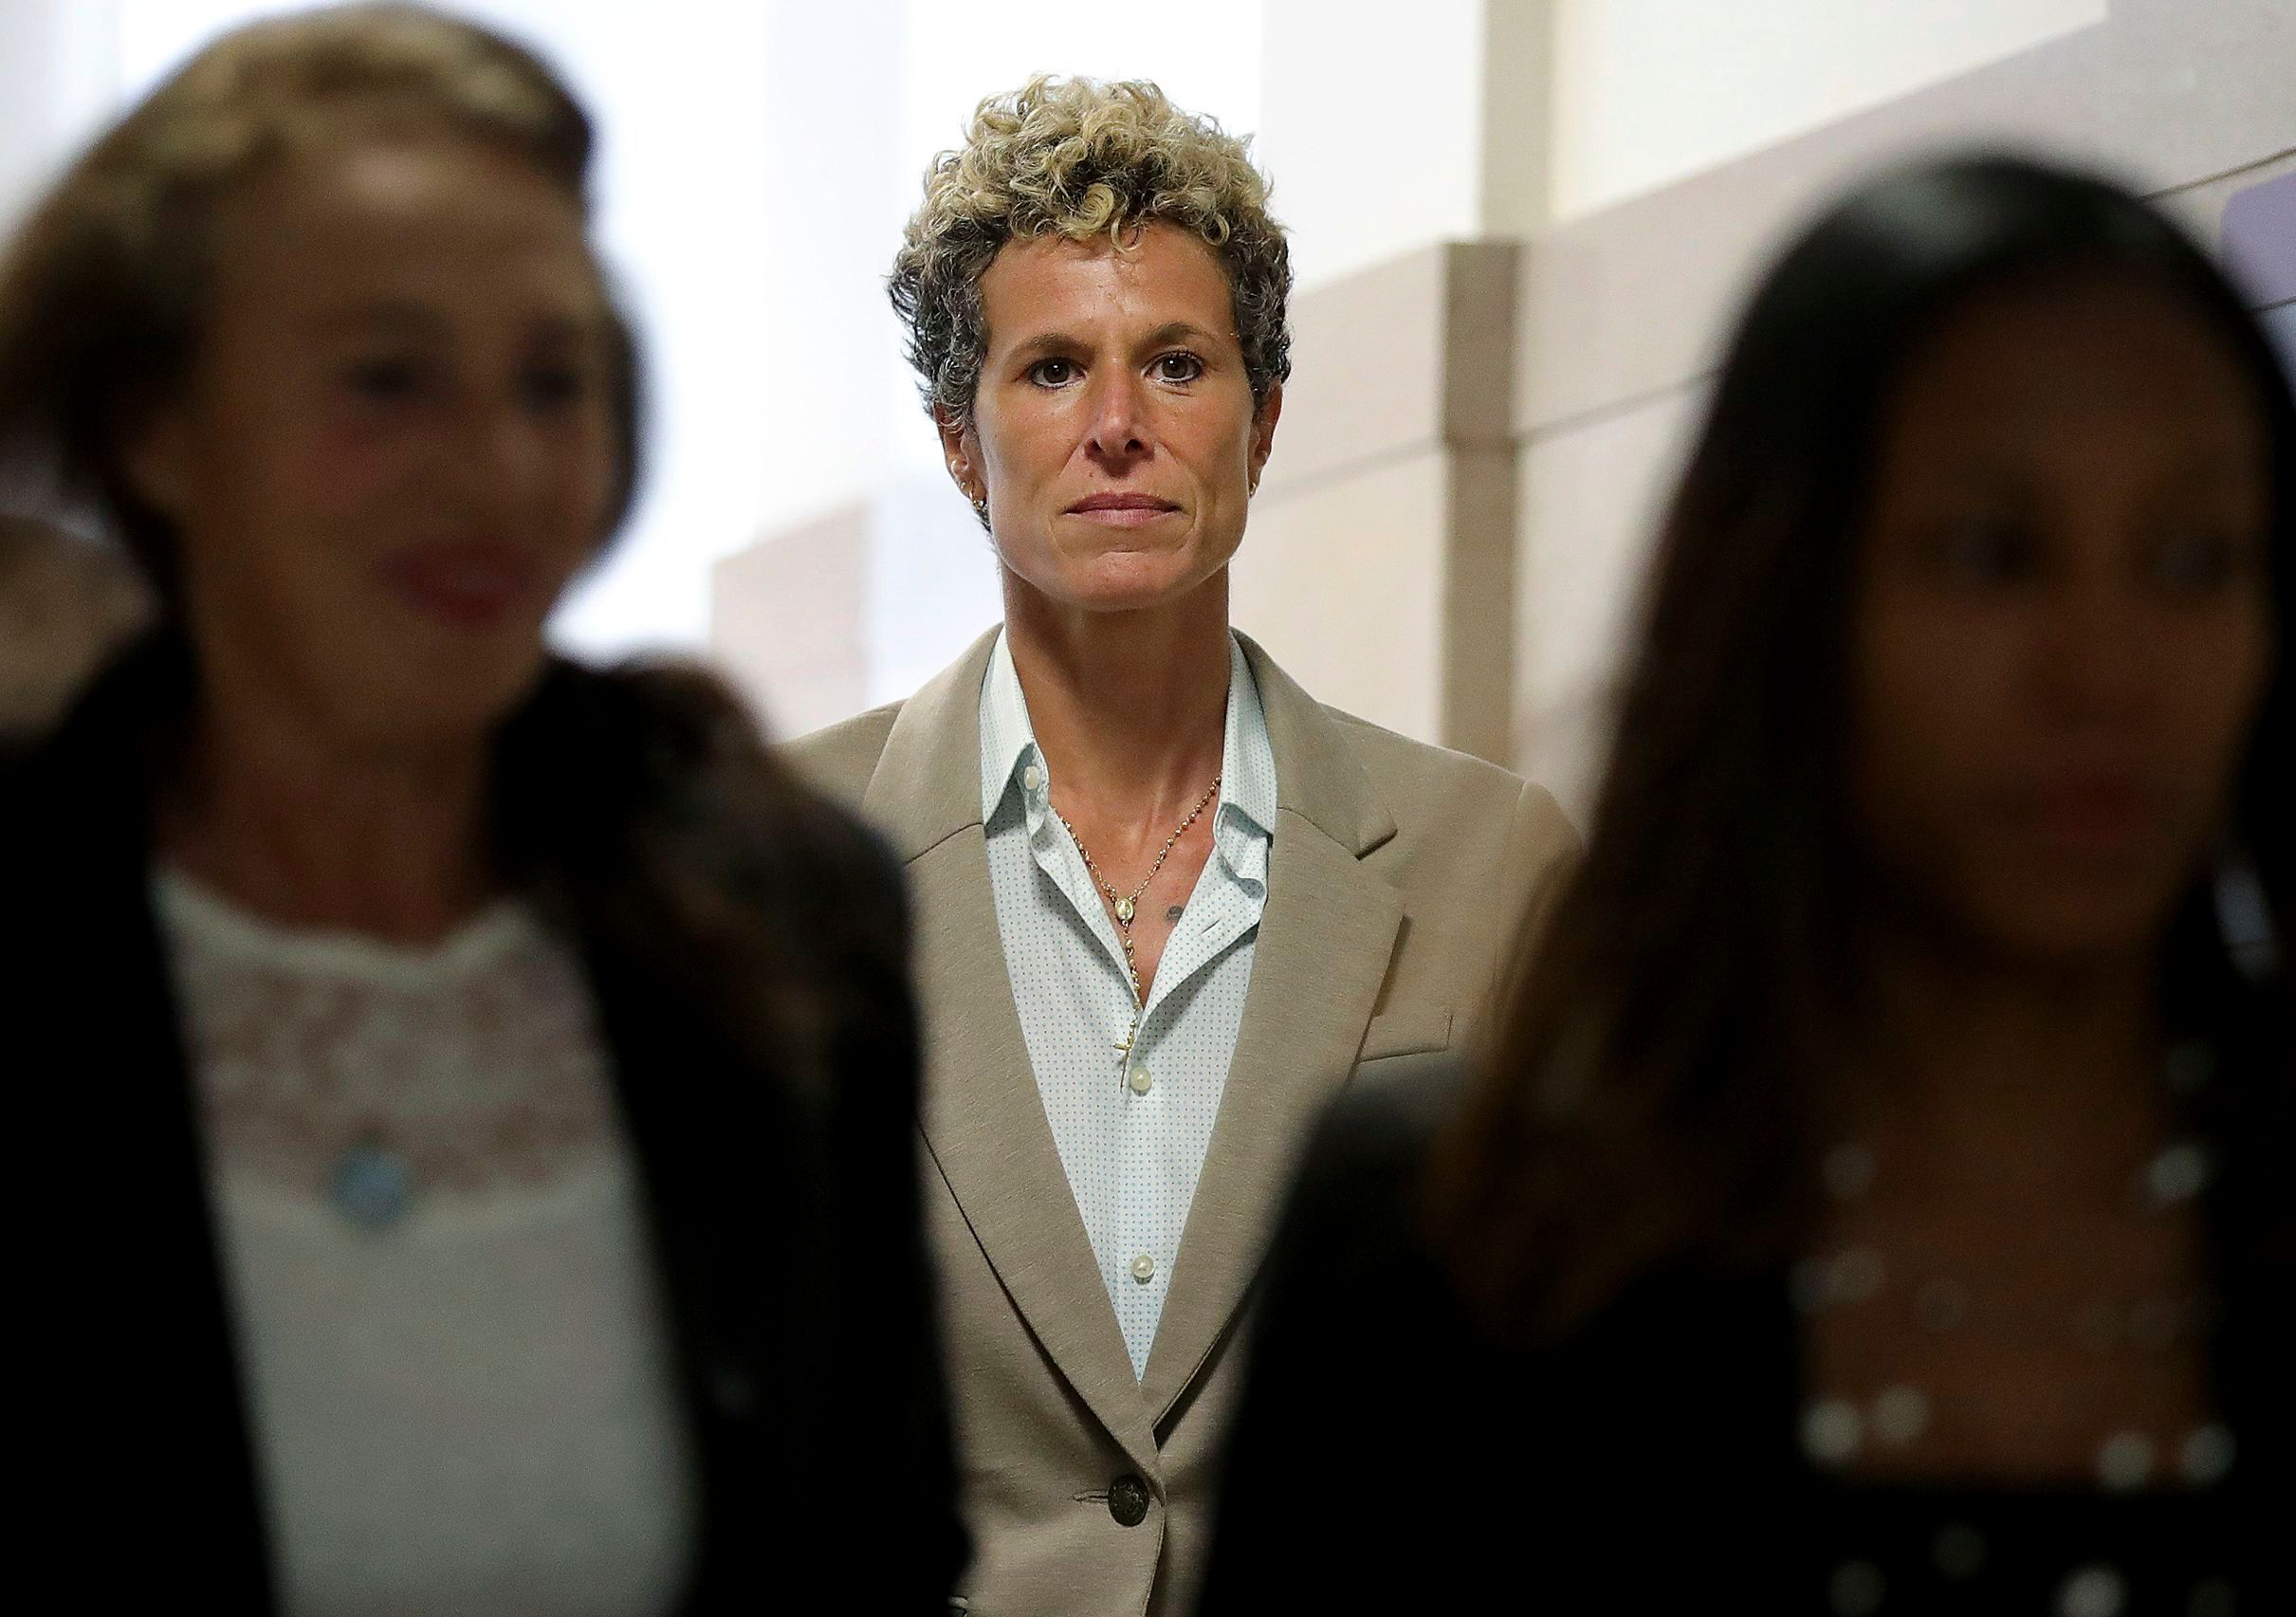 Accuser Andrea Constand returns to the courtroom at the sentencing hearing for Bill Cosby at the Montgomery County Courthouse in Norristown, Pa., on Sept. 24, 2018.